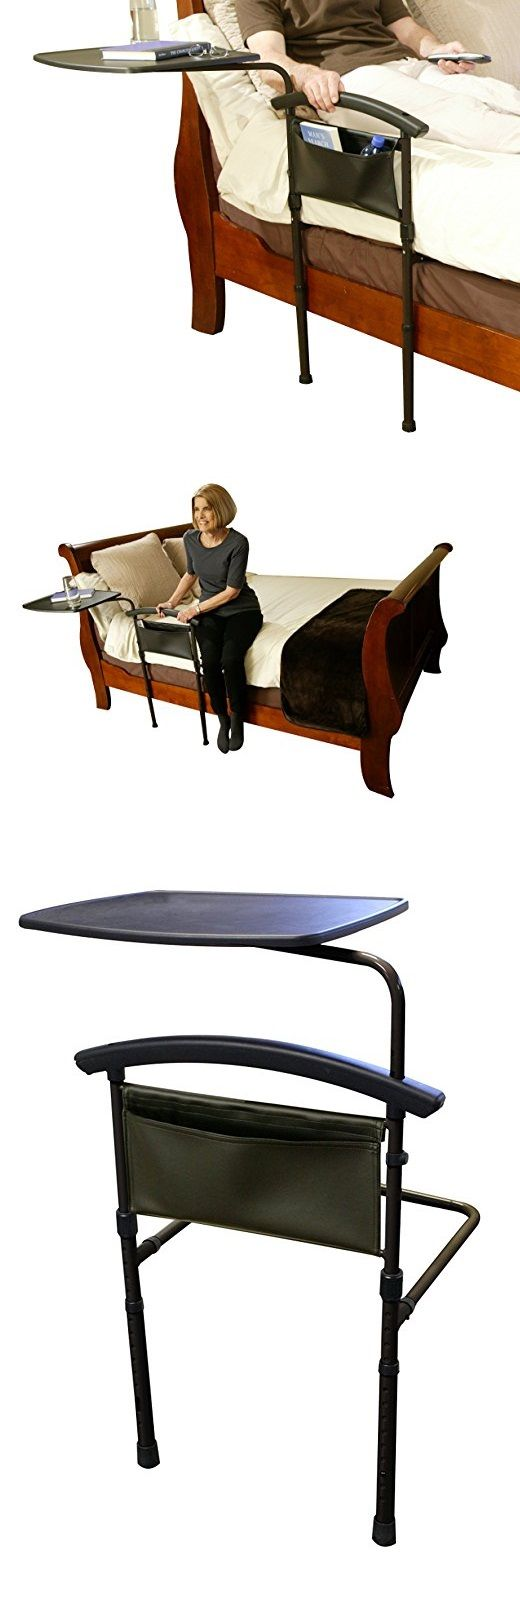 2 in 1 Overbed Table and Home Bed Rail Stand | Craze Trend